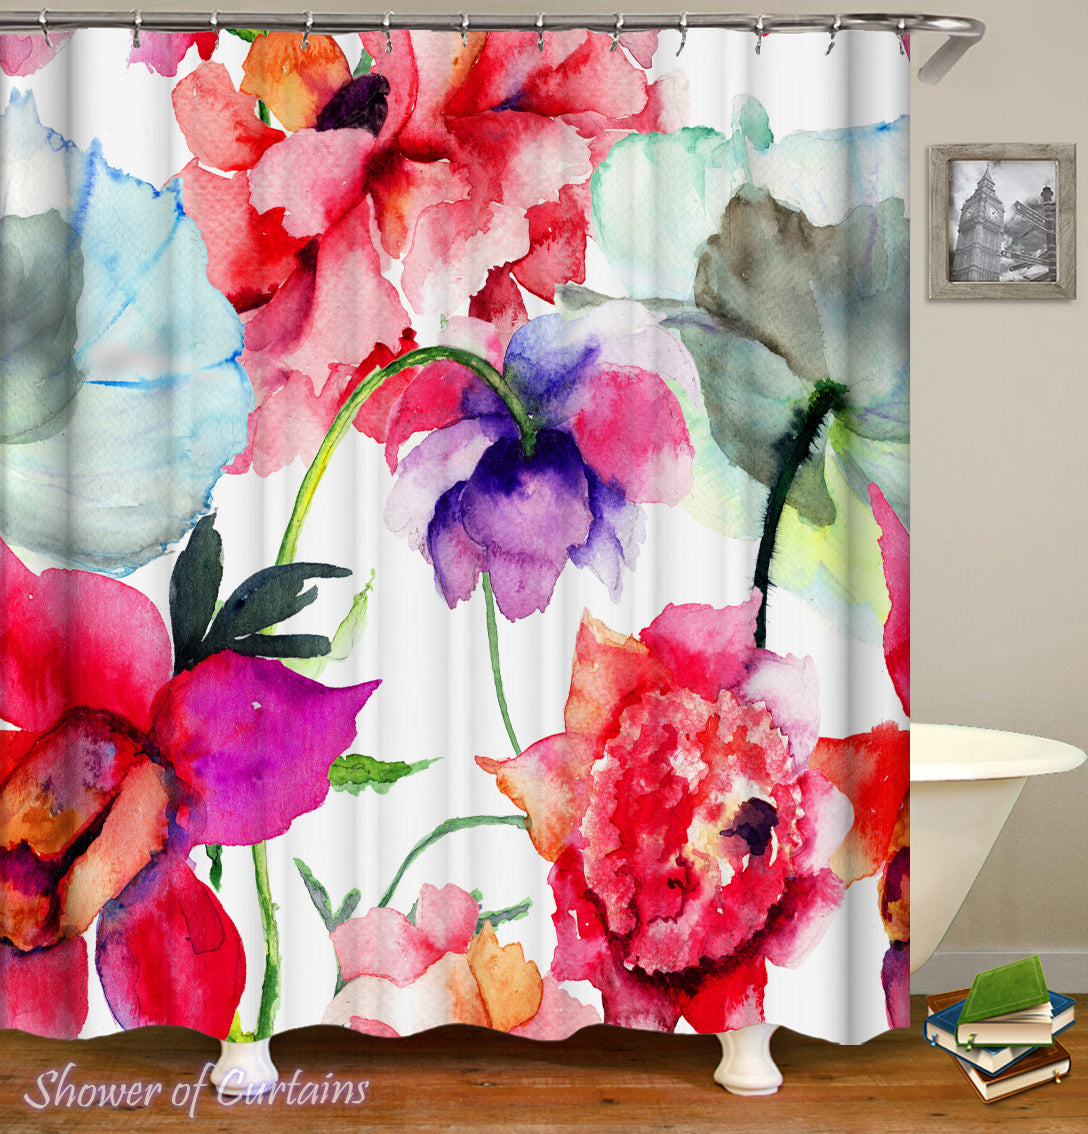 Shower Curtains Flowers Water Painting Shower Of Curtains